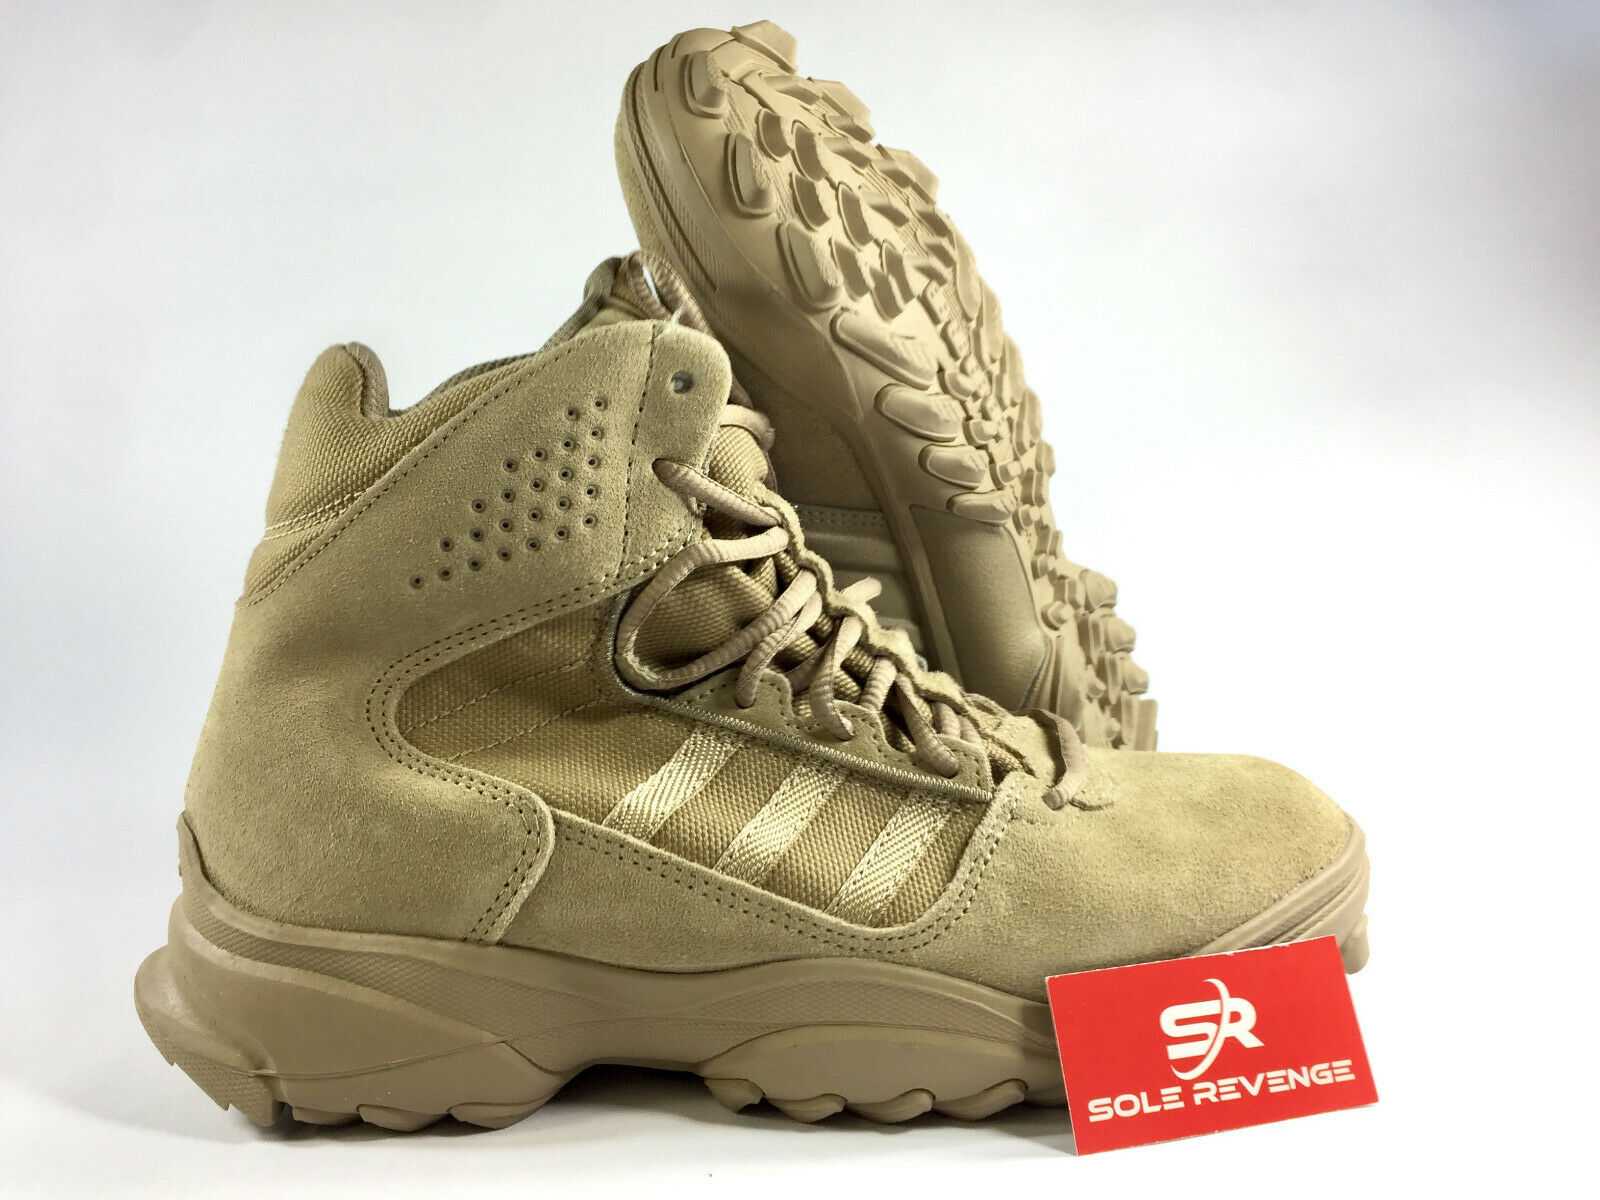 New Adidas Sport GSG9 Desert Low Combat Boots Military SWAT shoes GSG 9.3 U41774